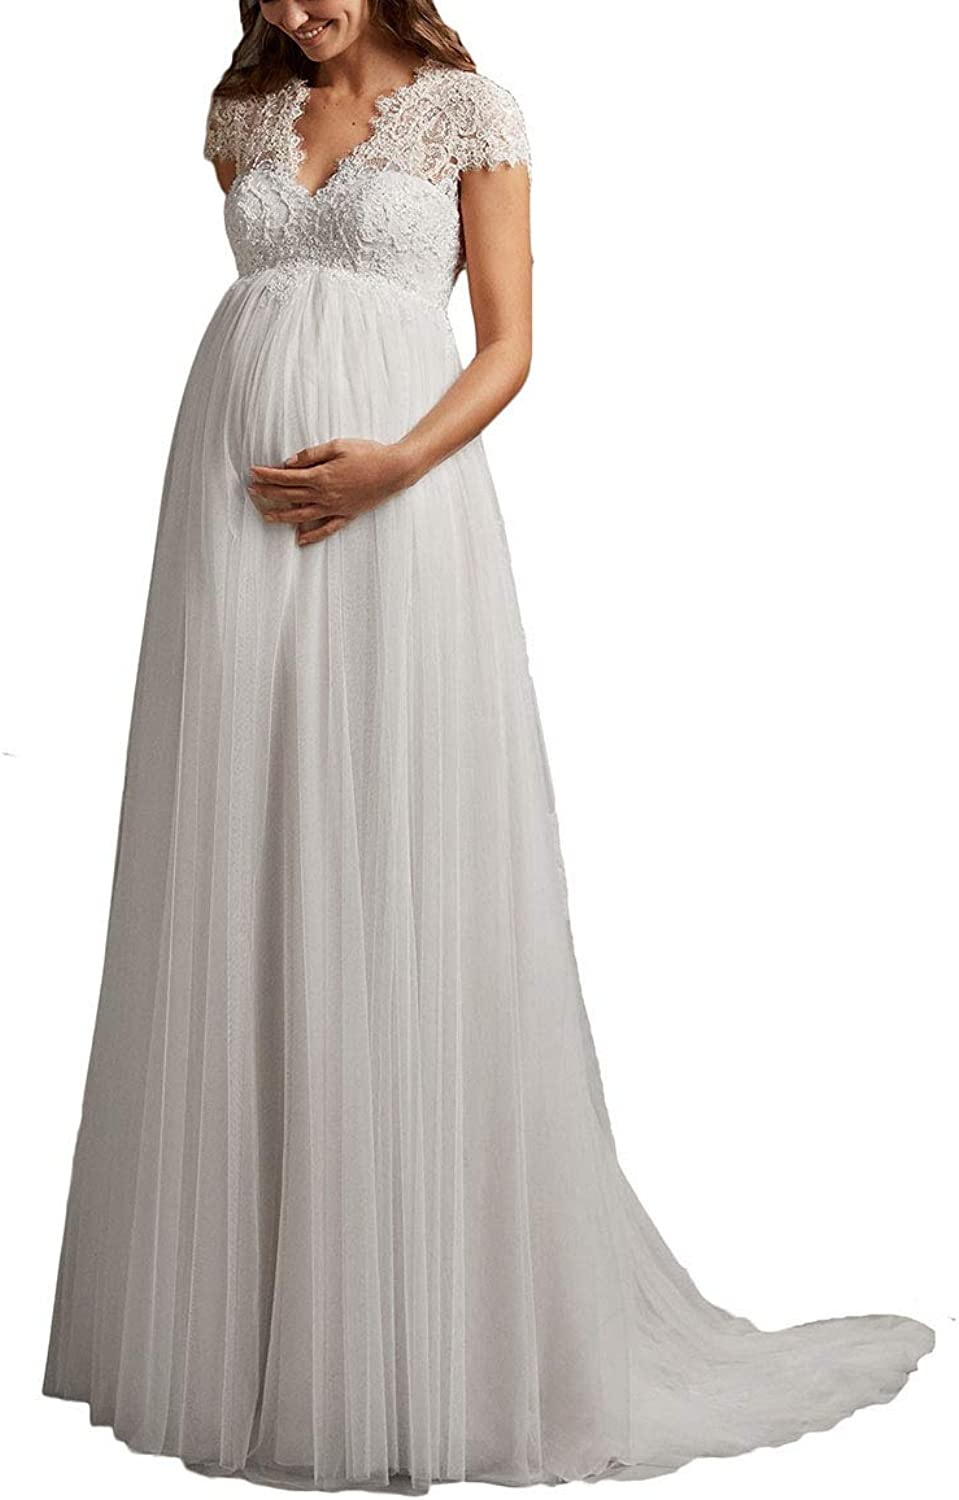 Yakey 2019 Empire Maternity Wedding Dresses for Bride Cap Sleeves Lace Appliques Bridal Gown